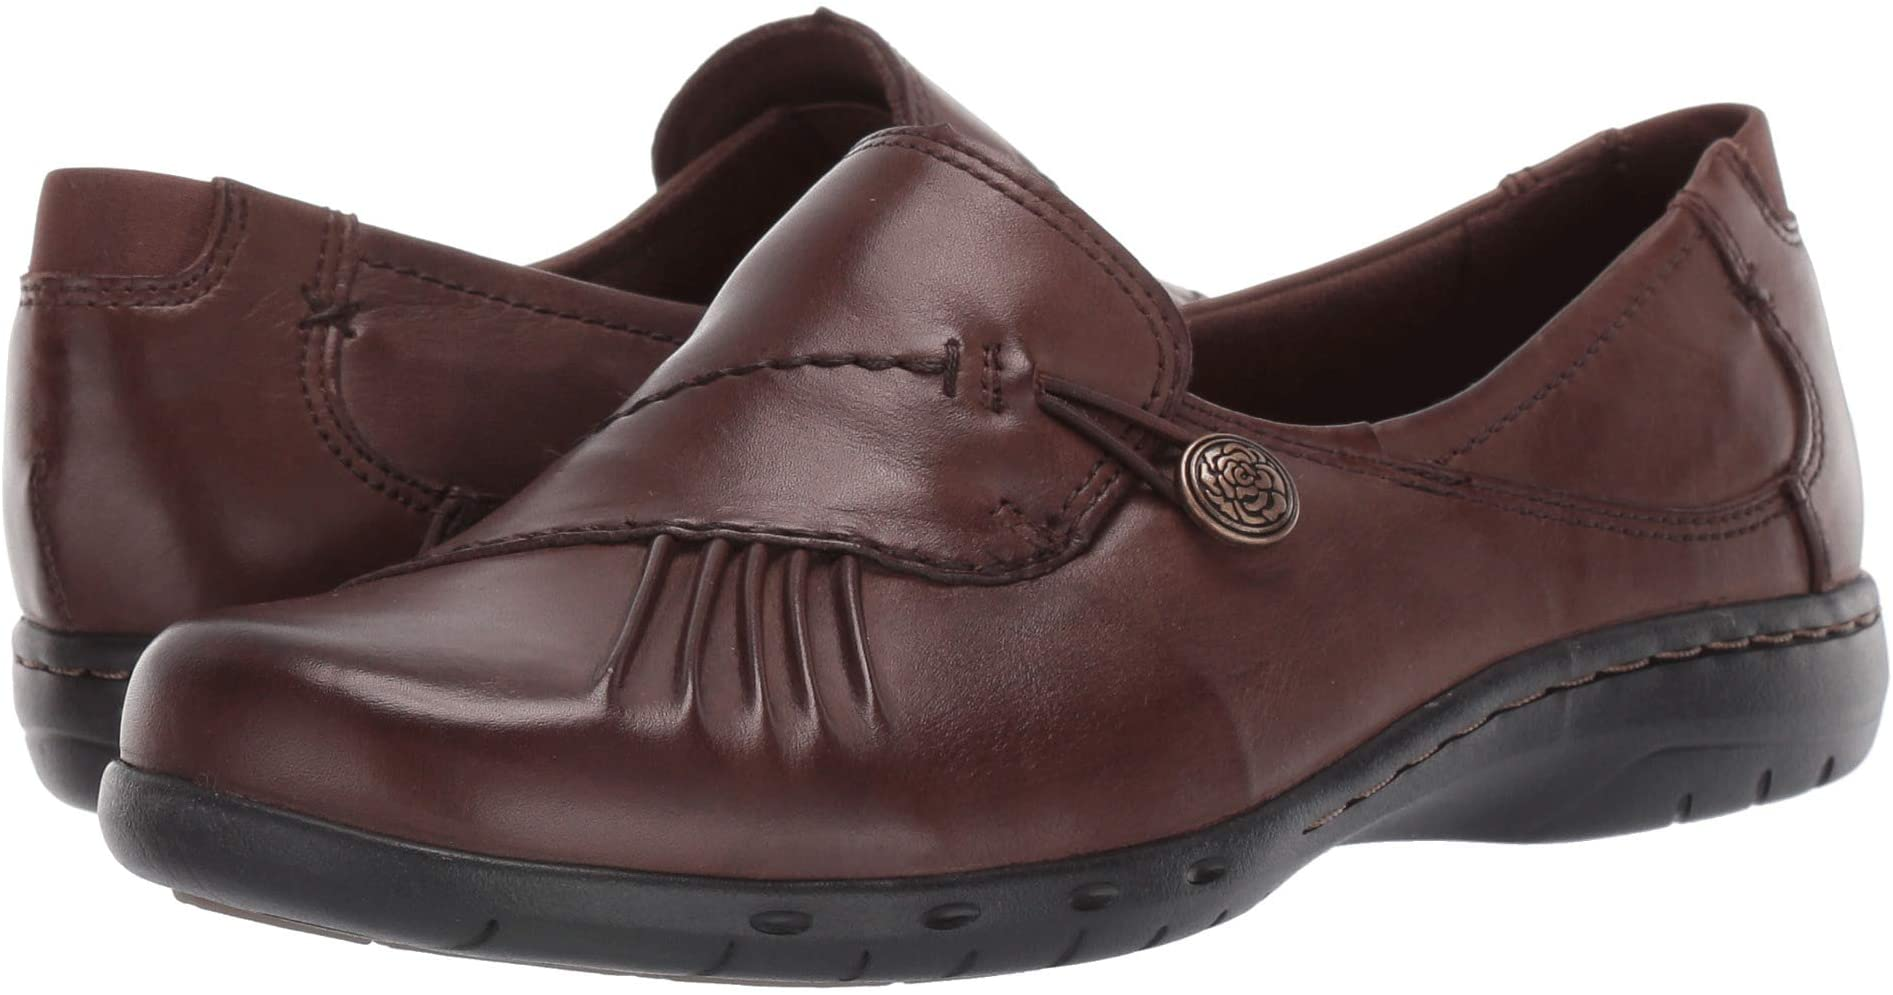 Cobb Hill Loafers